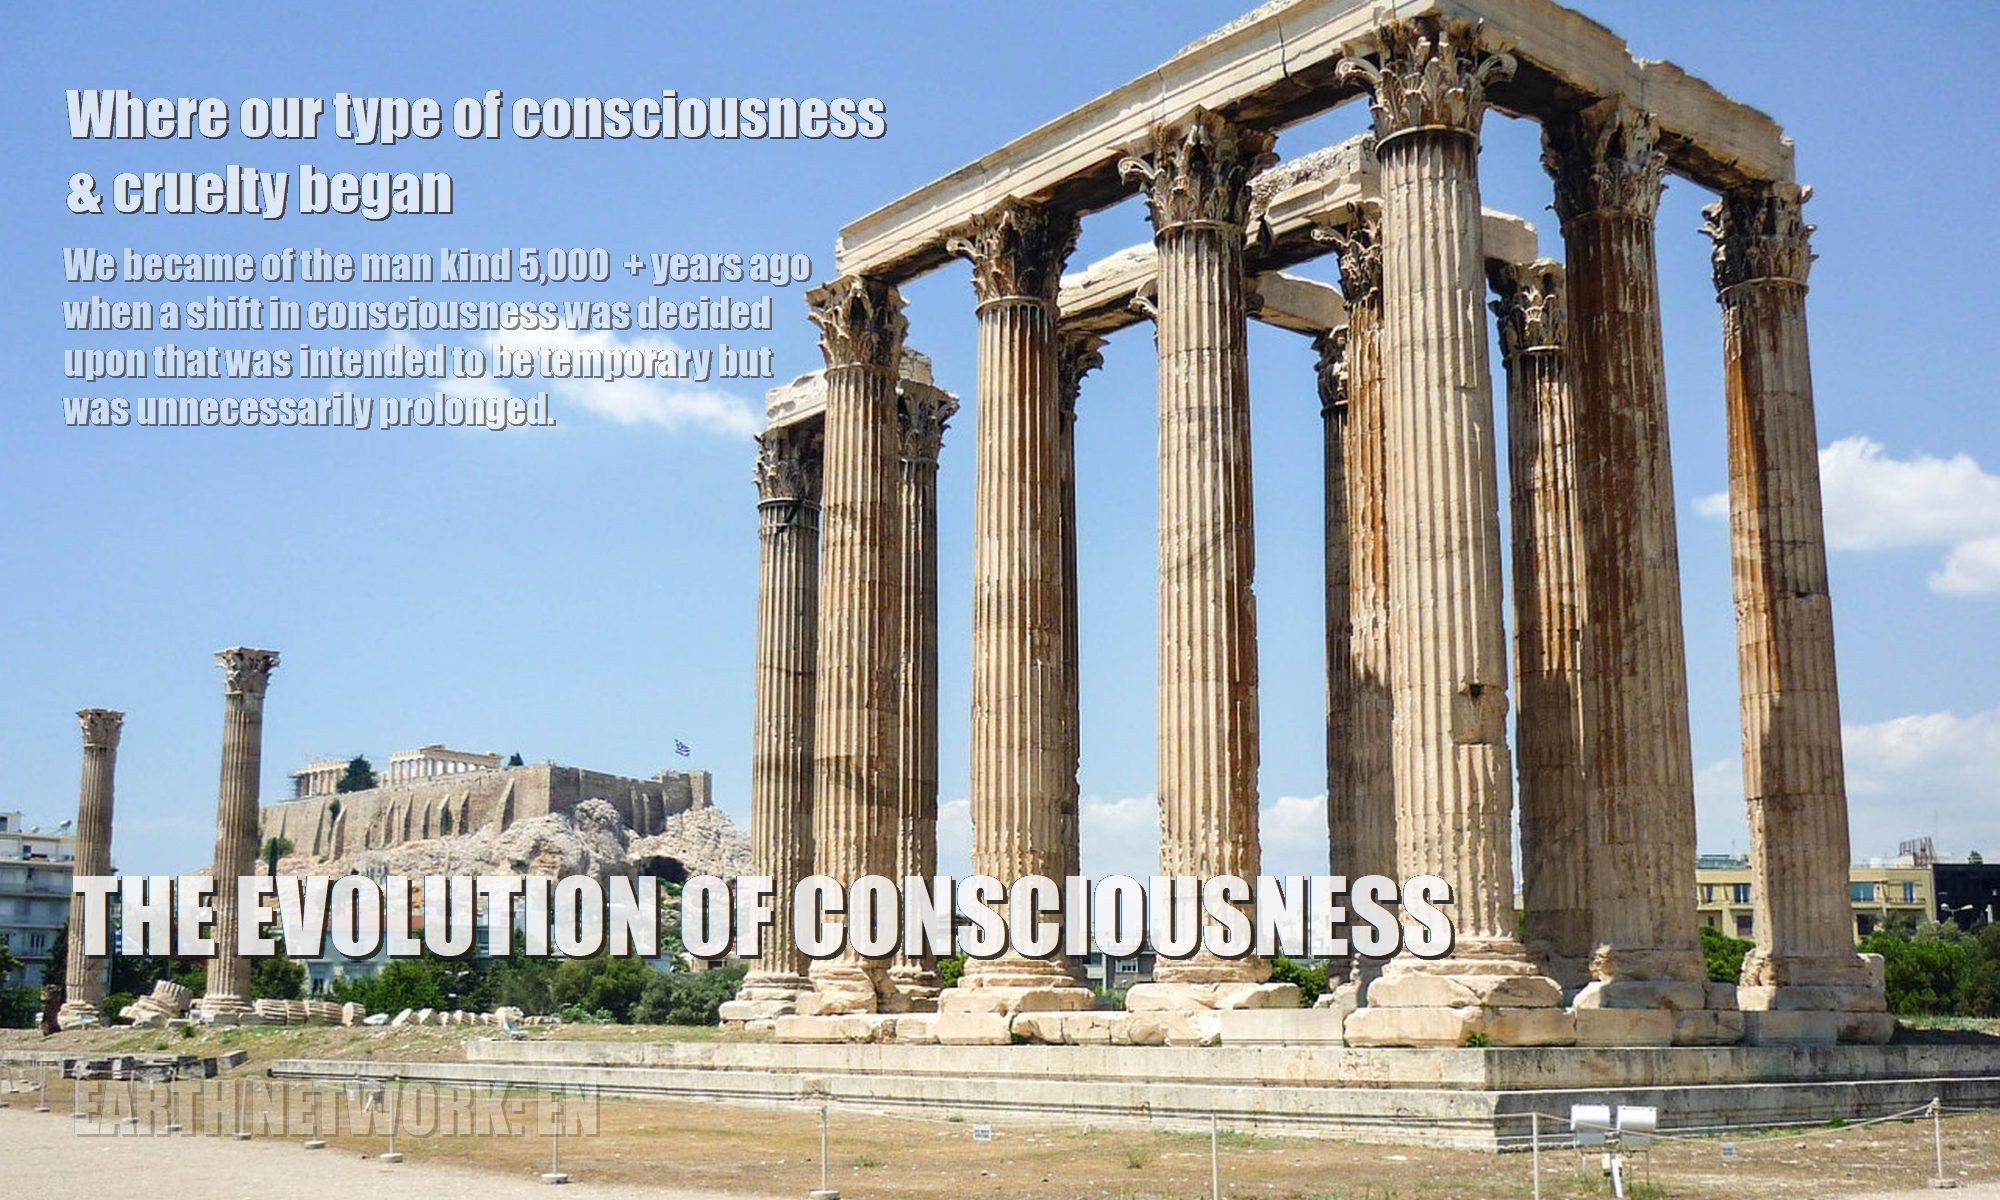 Greek ruins depicting origins of our type of consciousness